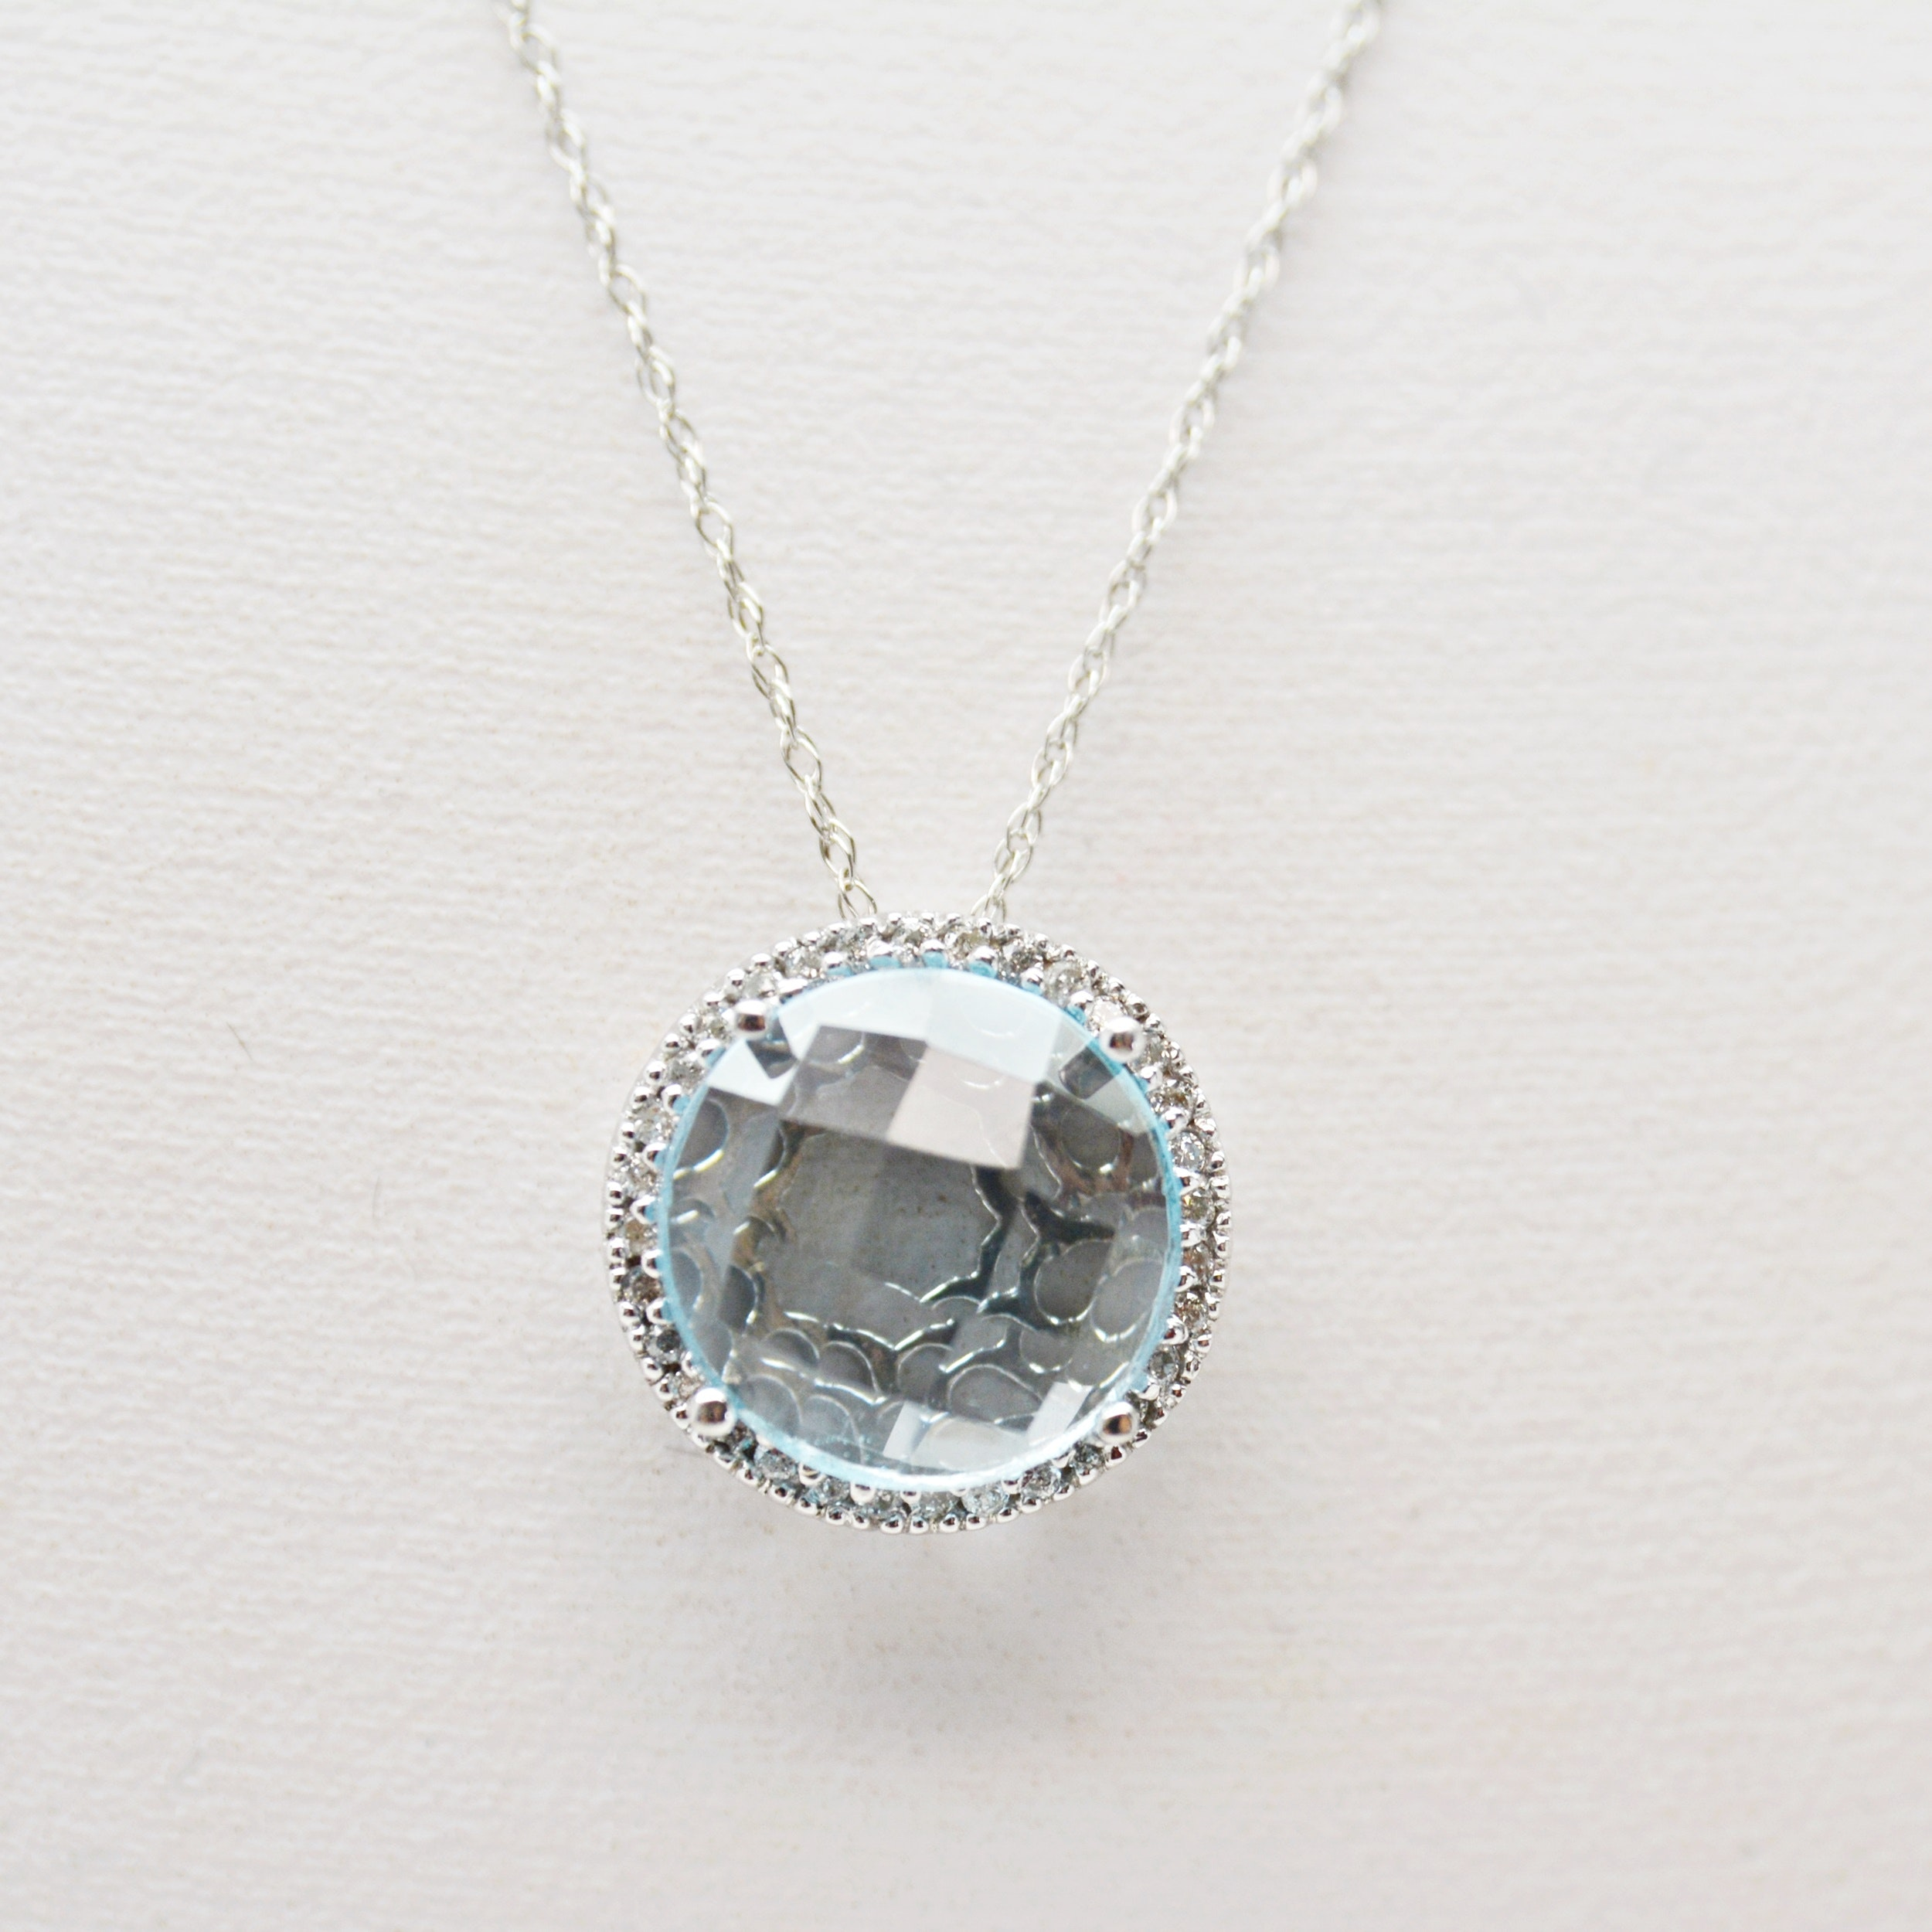 14K White Gold Topaz and Diamond Pendant Necklace